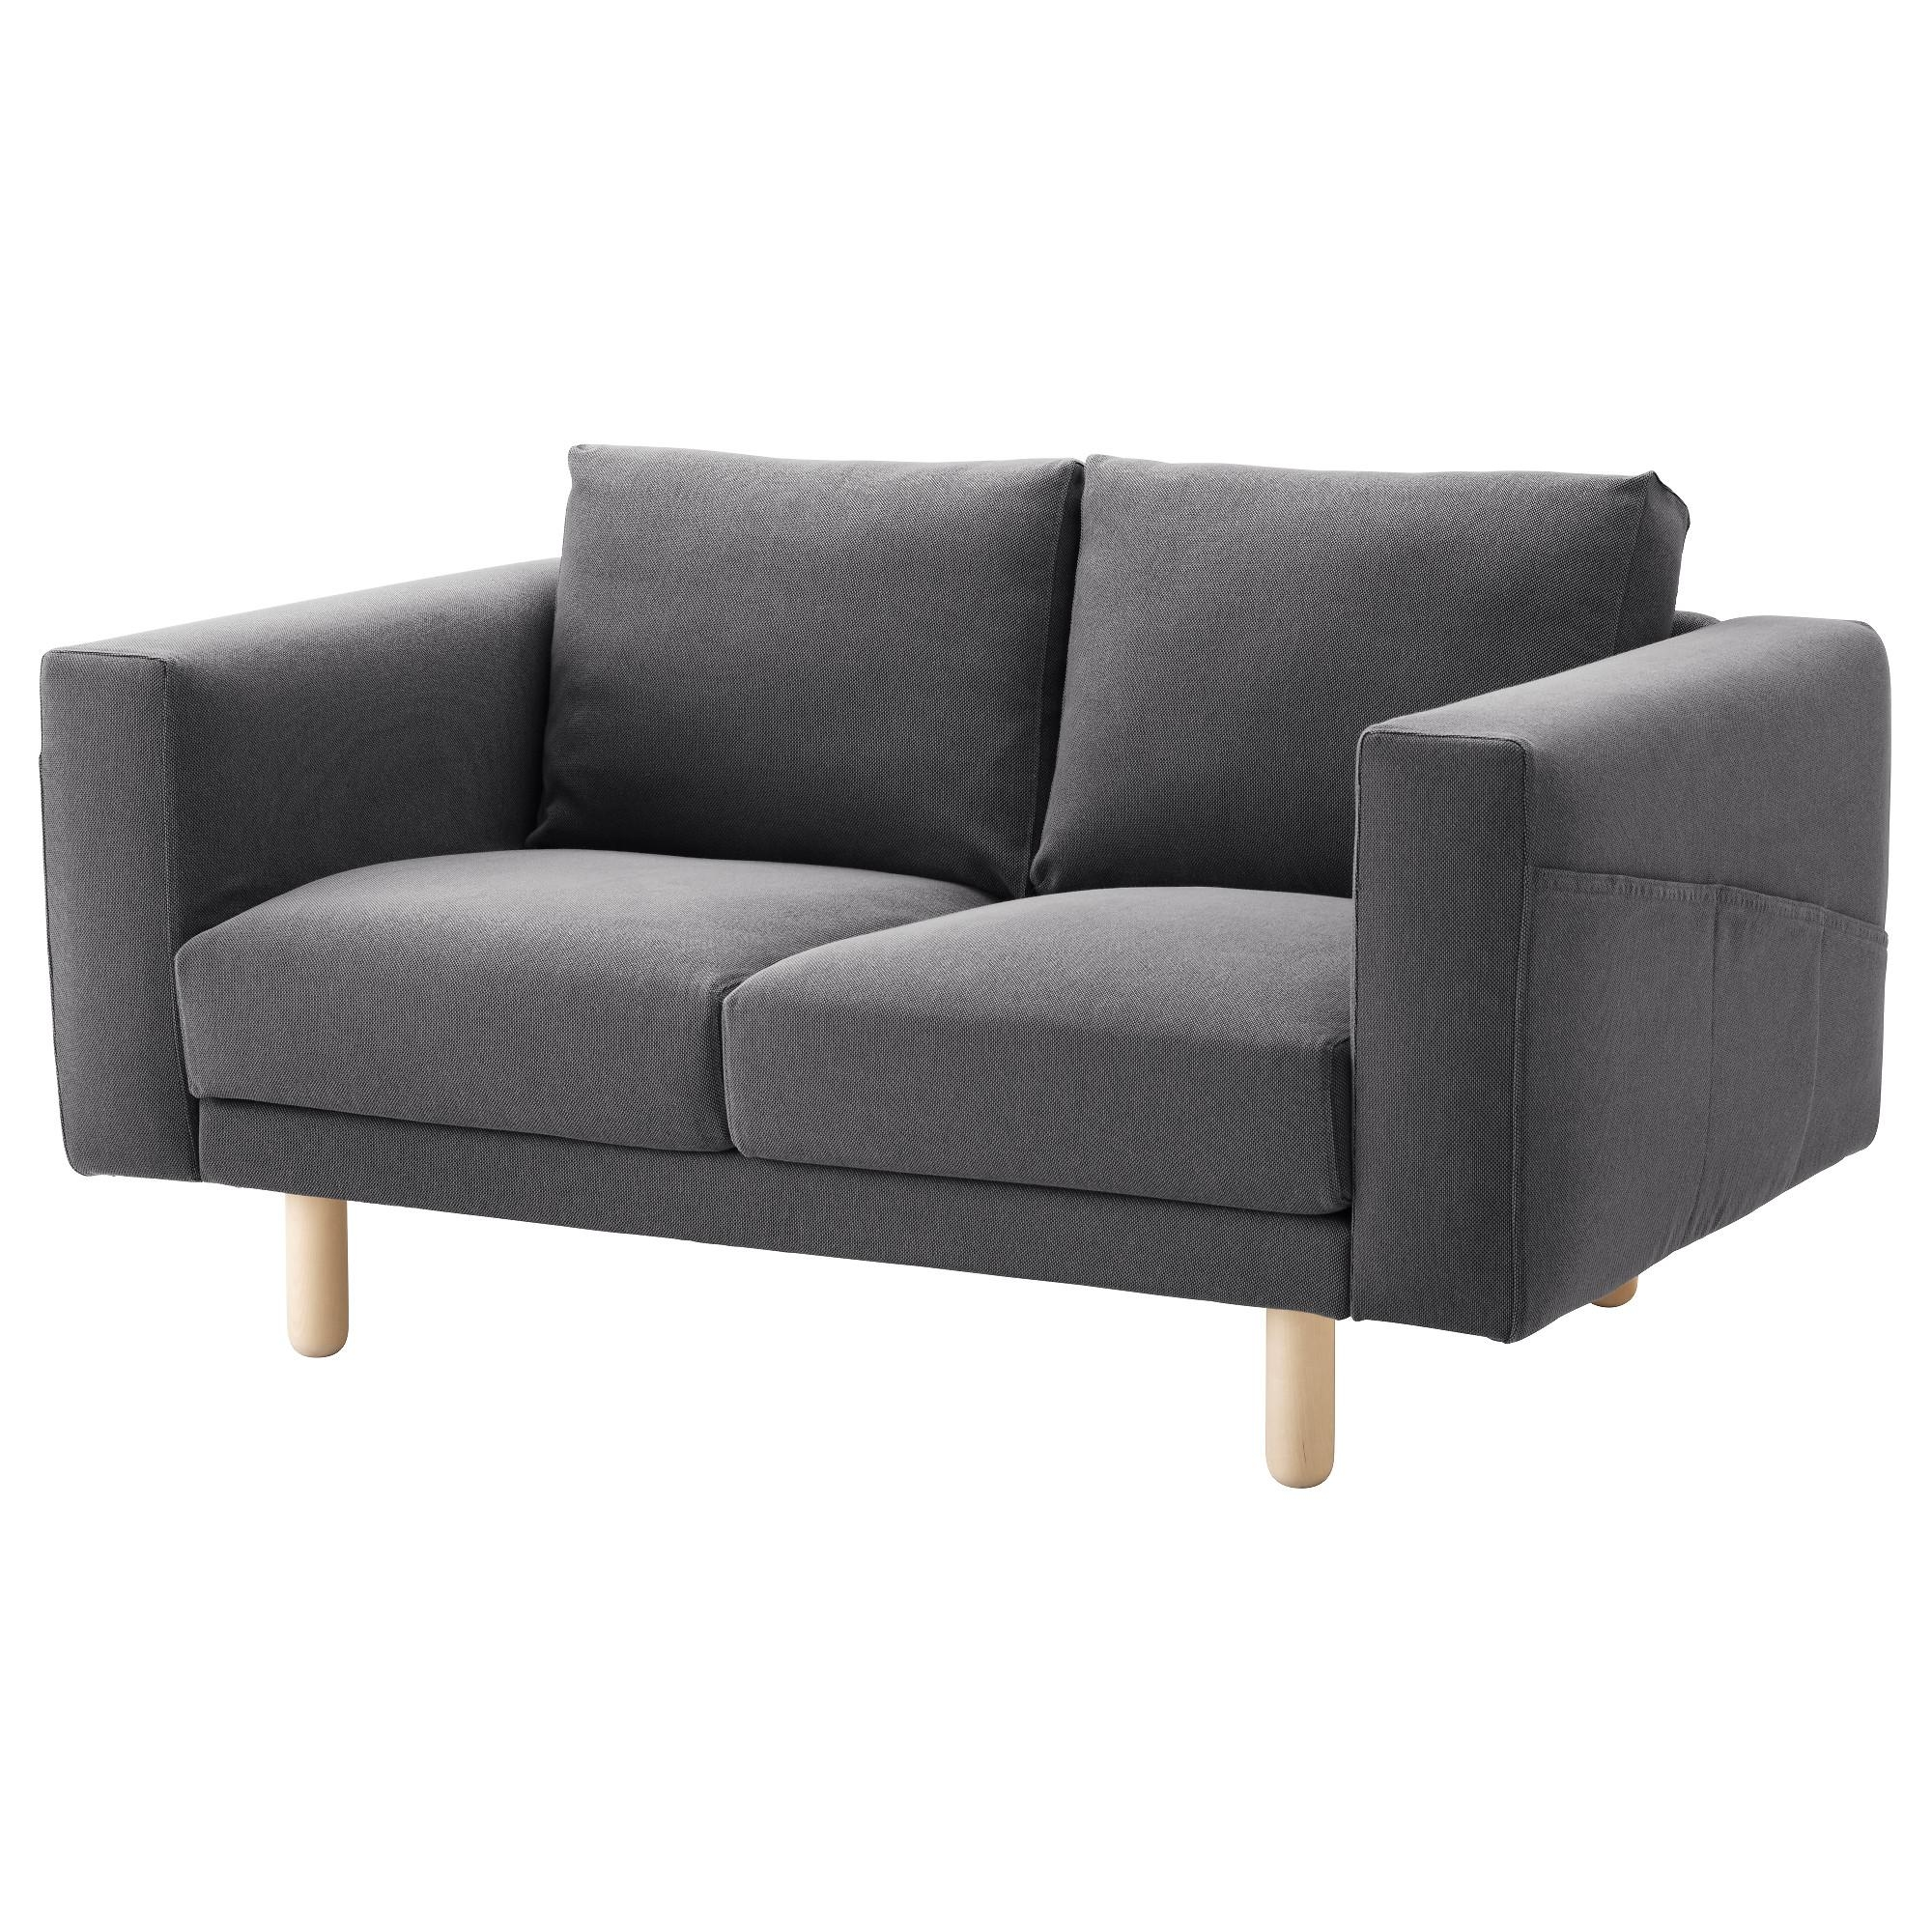 Small Sofa & 2 Seater Sofa | Ikea Pertaining To Small Sofas Ikea (View 3 of 20)